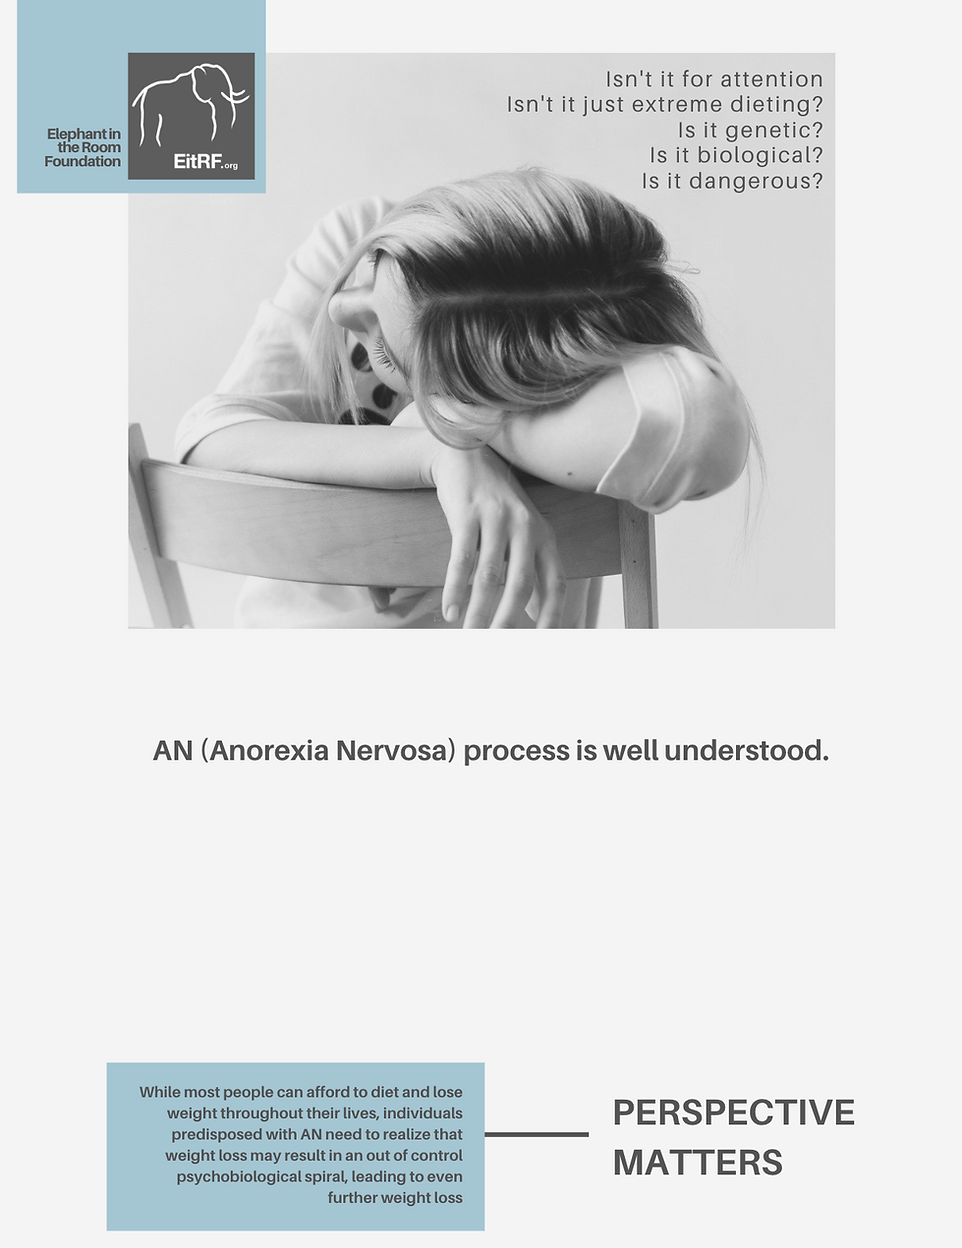 Text explaining how anorexia makes predisposed individuals lose more weight than is healthy.